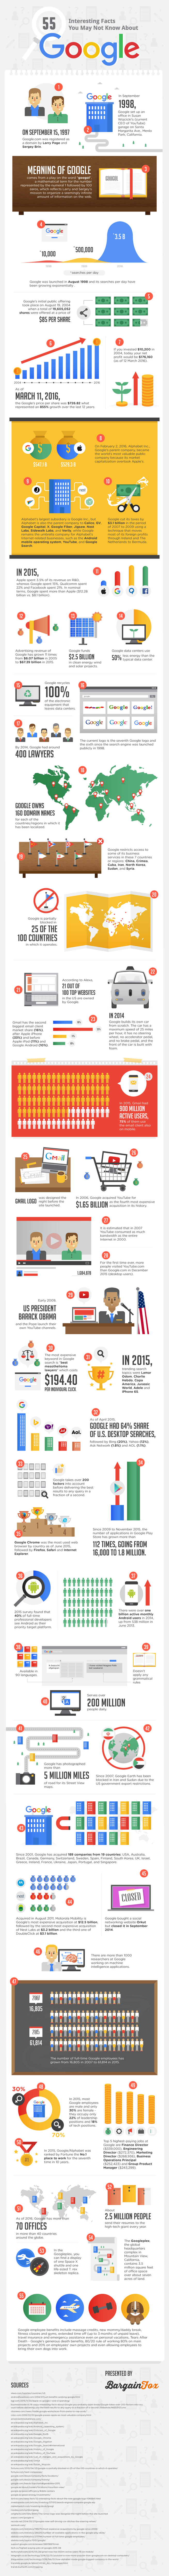 Interesting facts you may not know about Google